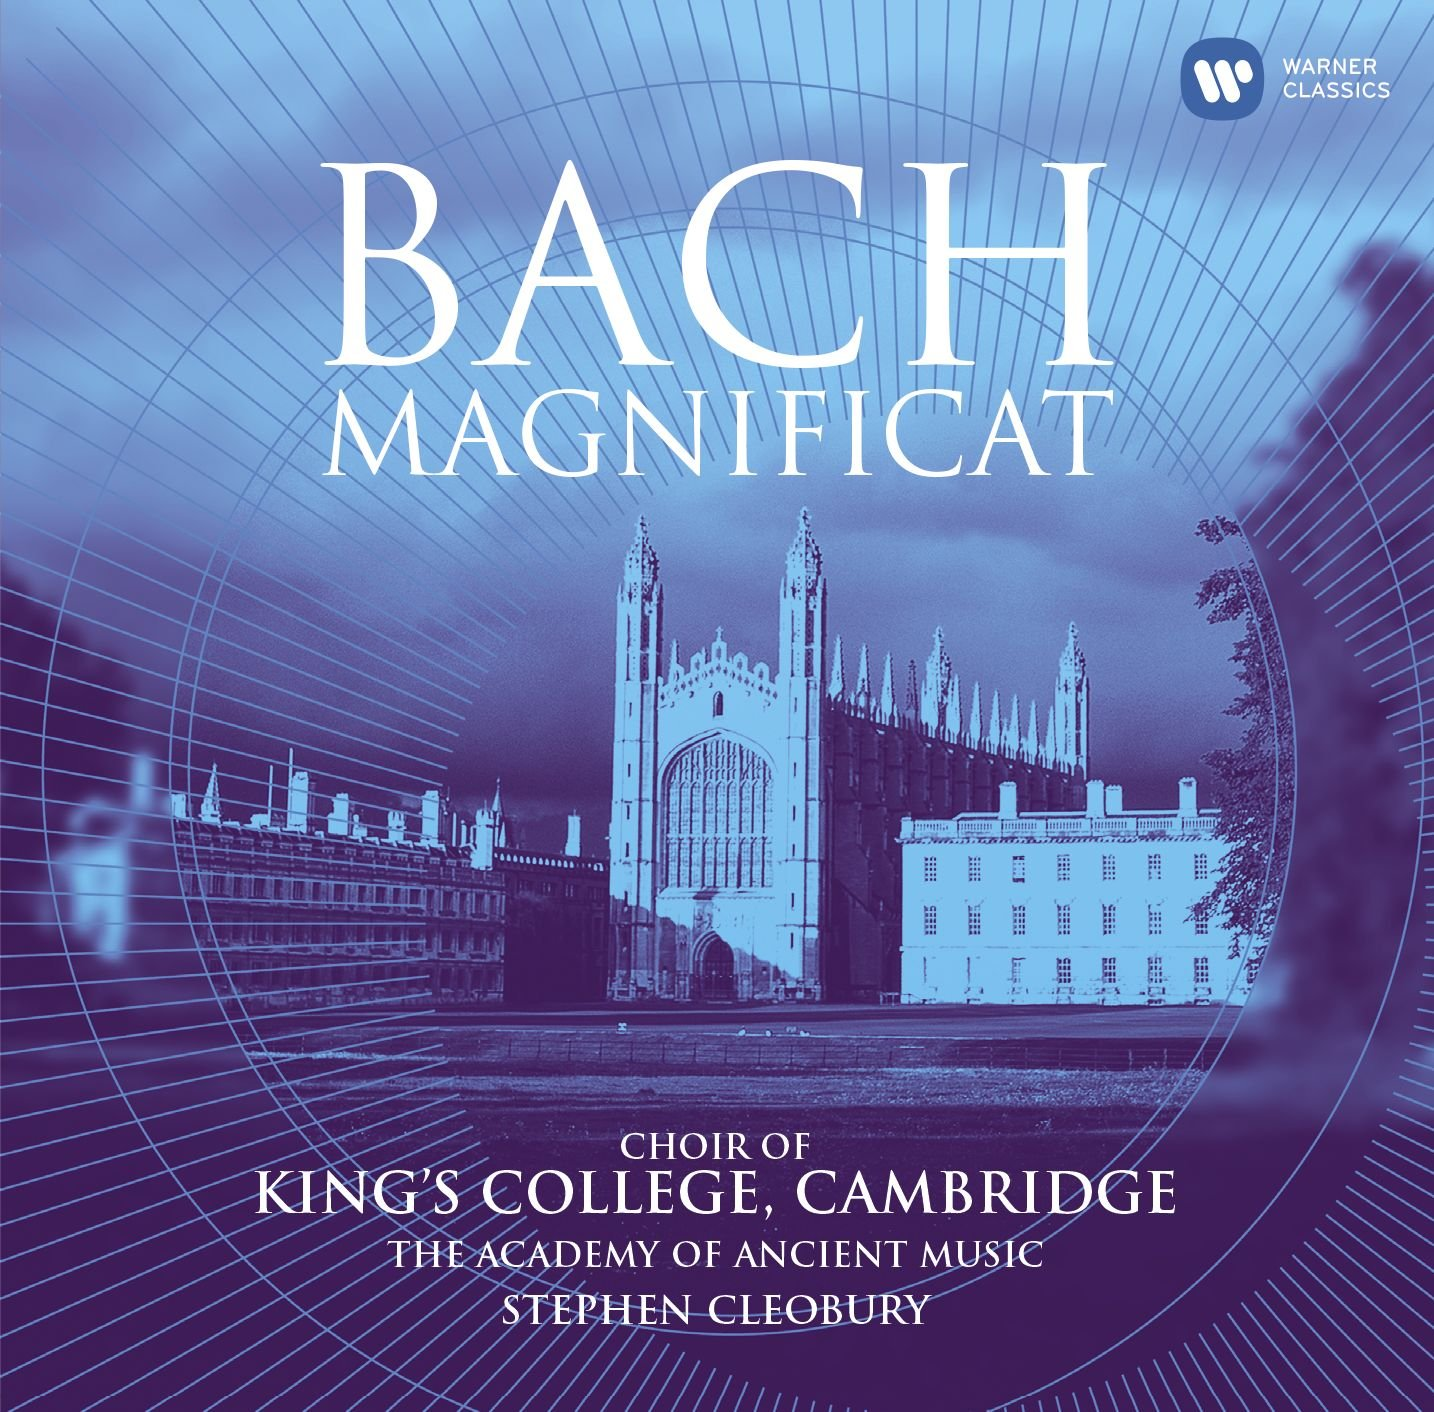 J.S. Bach: Magnificat by Warner Bros.